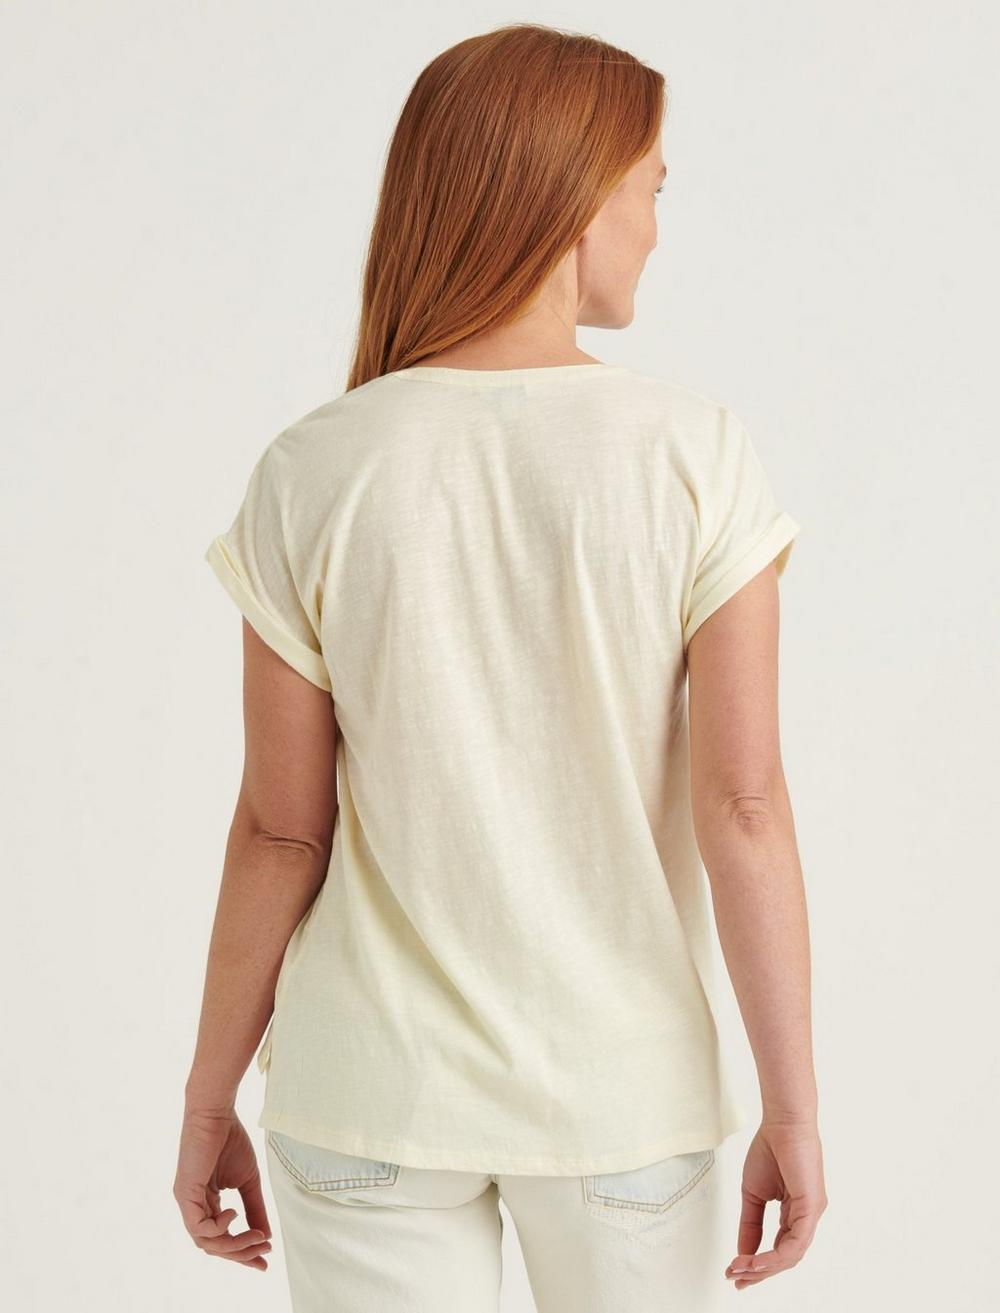 SHORT SLEEVE WOVEN MIX BUTTON DOWN TOP, image 4